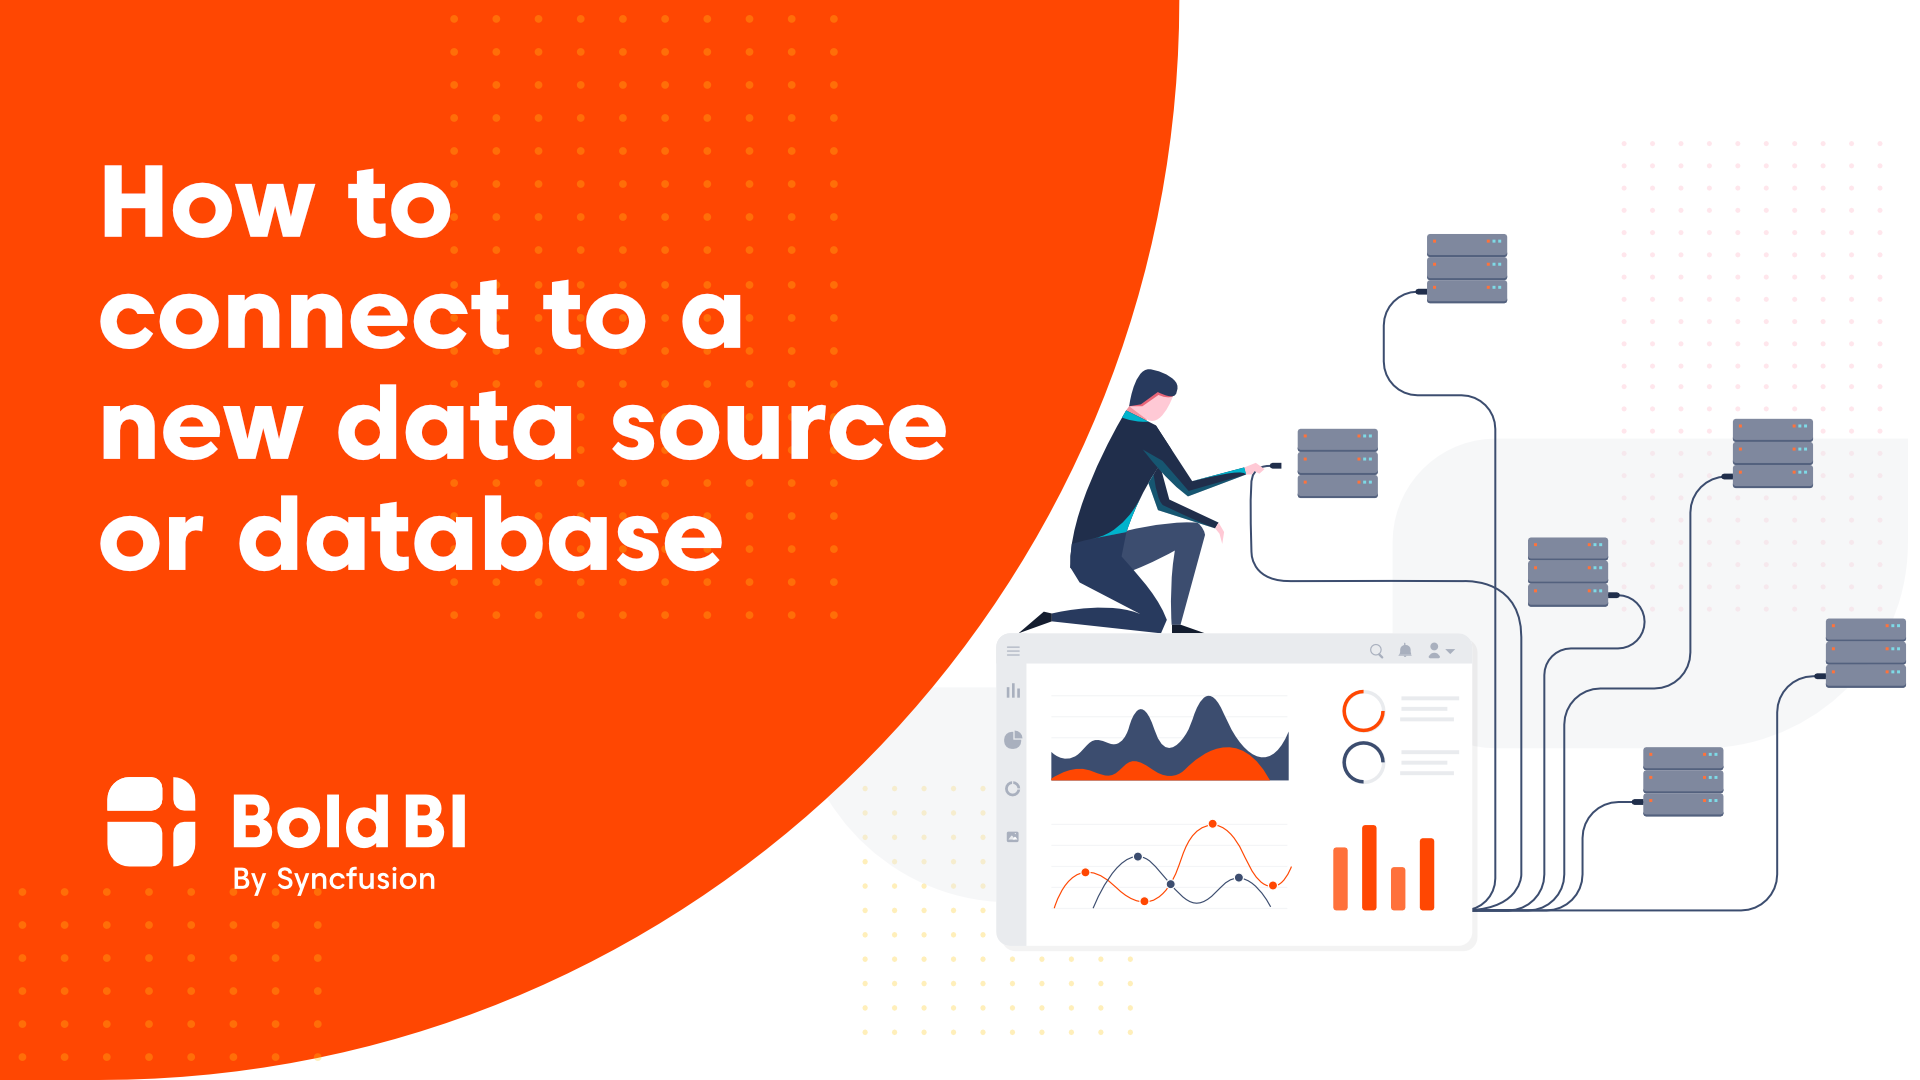 How to Connect to a New Data Source or Database in Enterprise BI